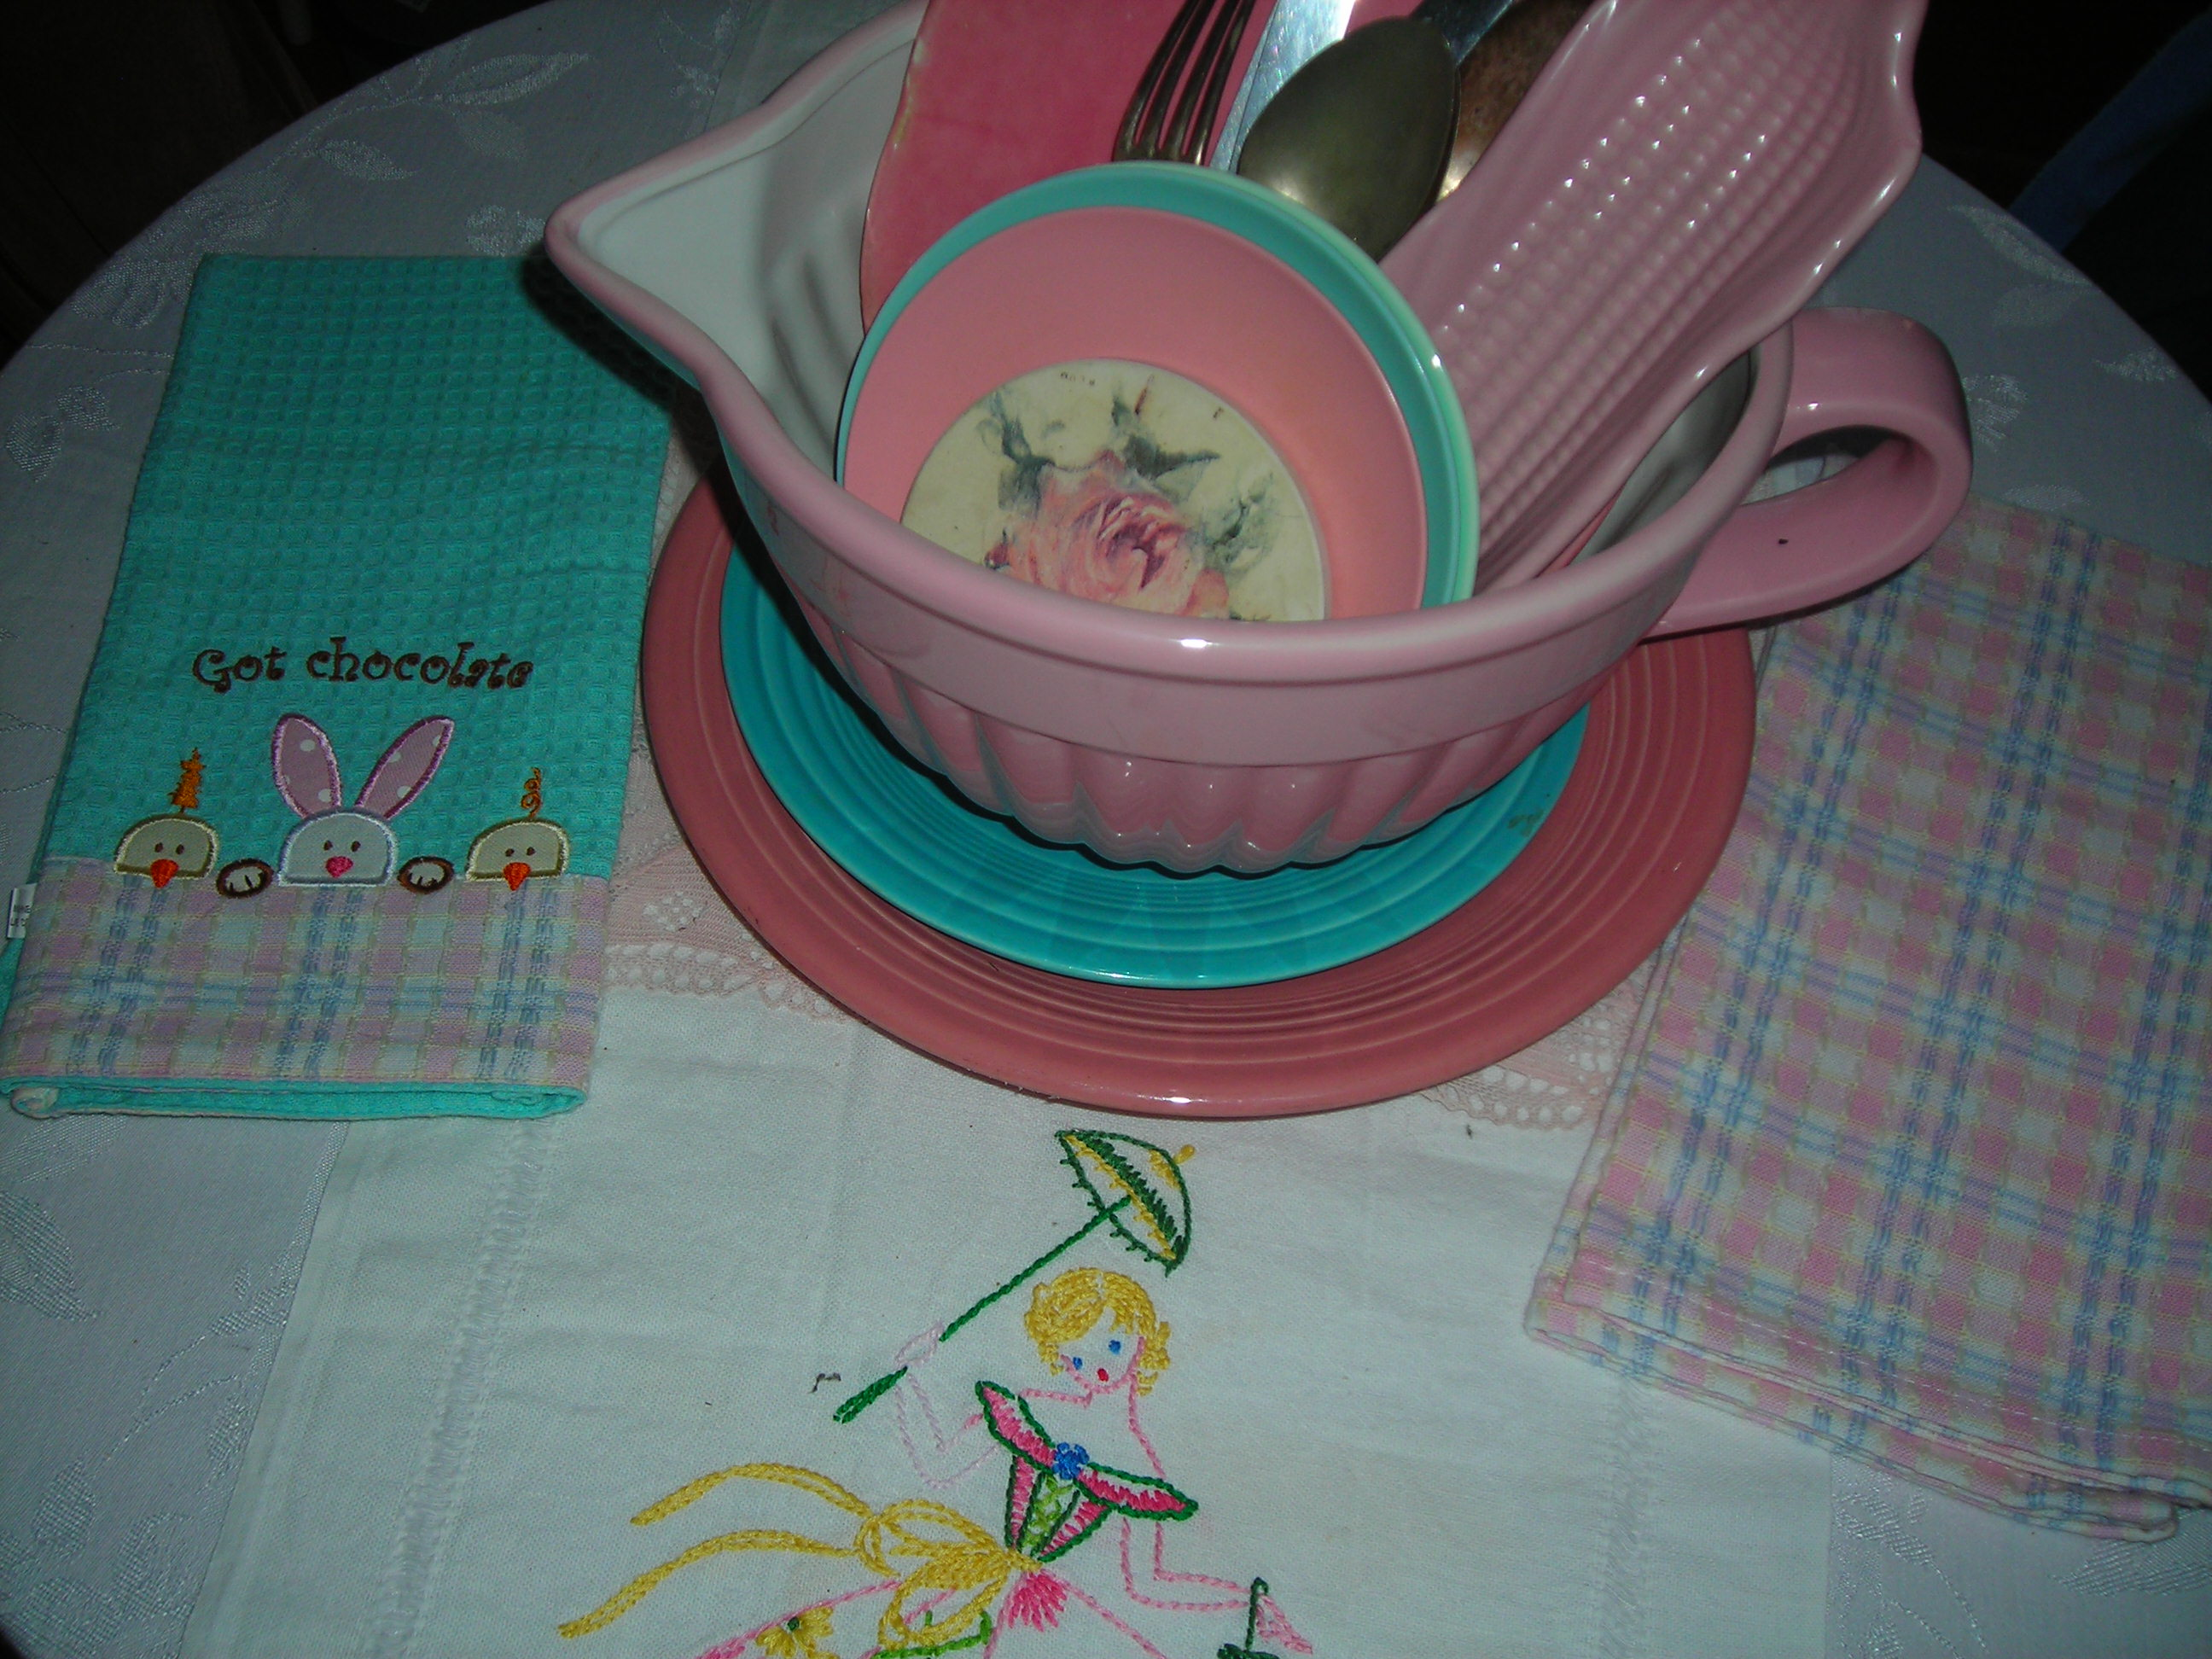 and the matching one on the right ... they look great with my new batter bowl and southern belle runner on the b'fast table (thanks again bon and mary)